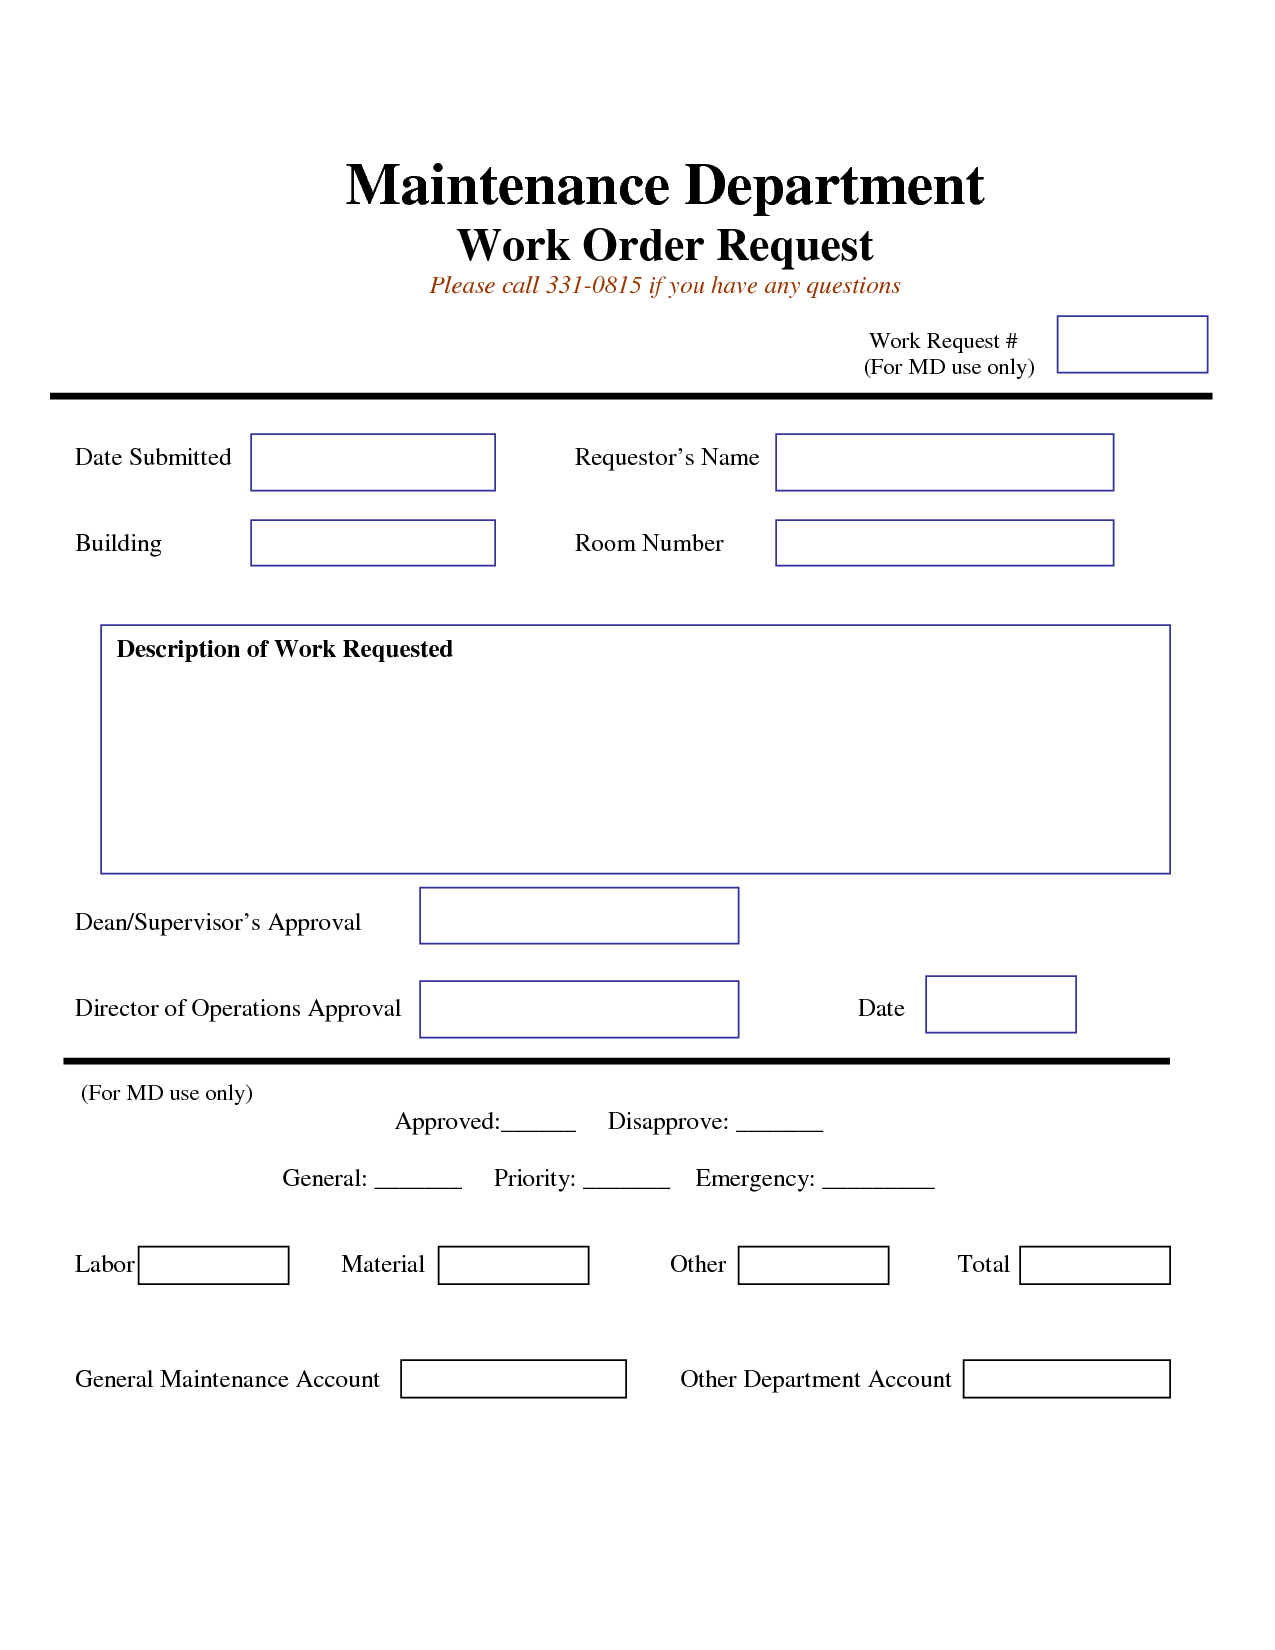 Work request form maintenance work order request form for Internal work order template